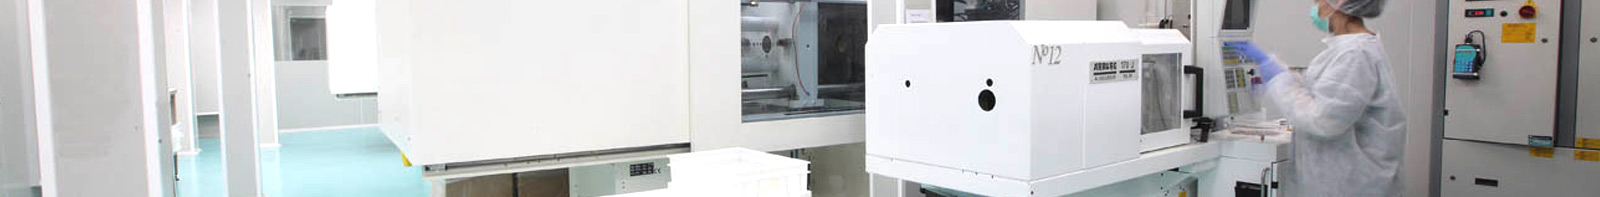 Plastics Injection moulding in clean room conditions with quality guaranty |Innovamed